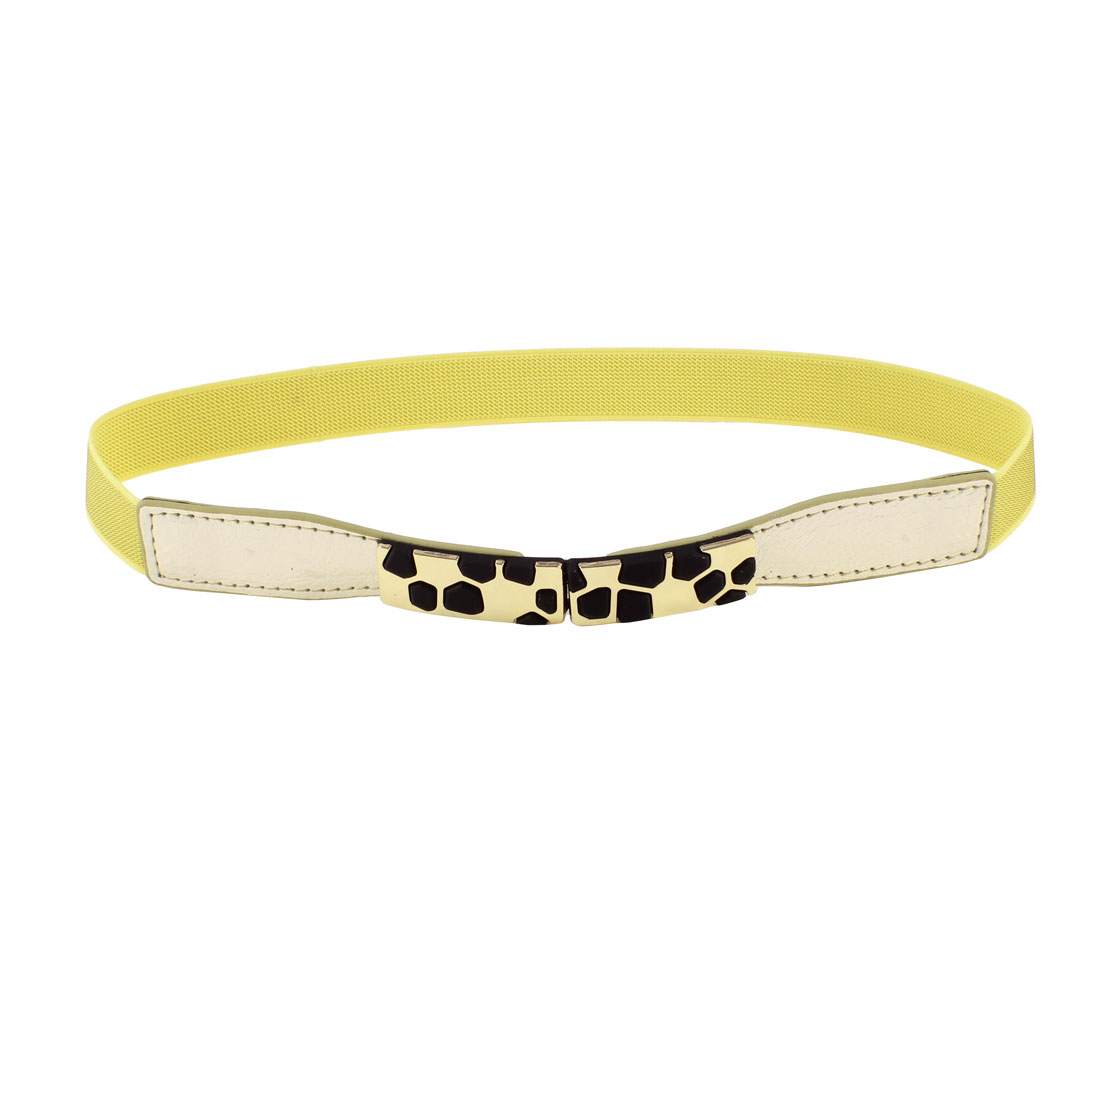 Block Design Metal Interlocking Buckle Stretchy Waist Belt Yellow for Ladies